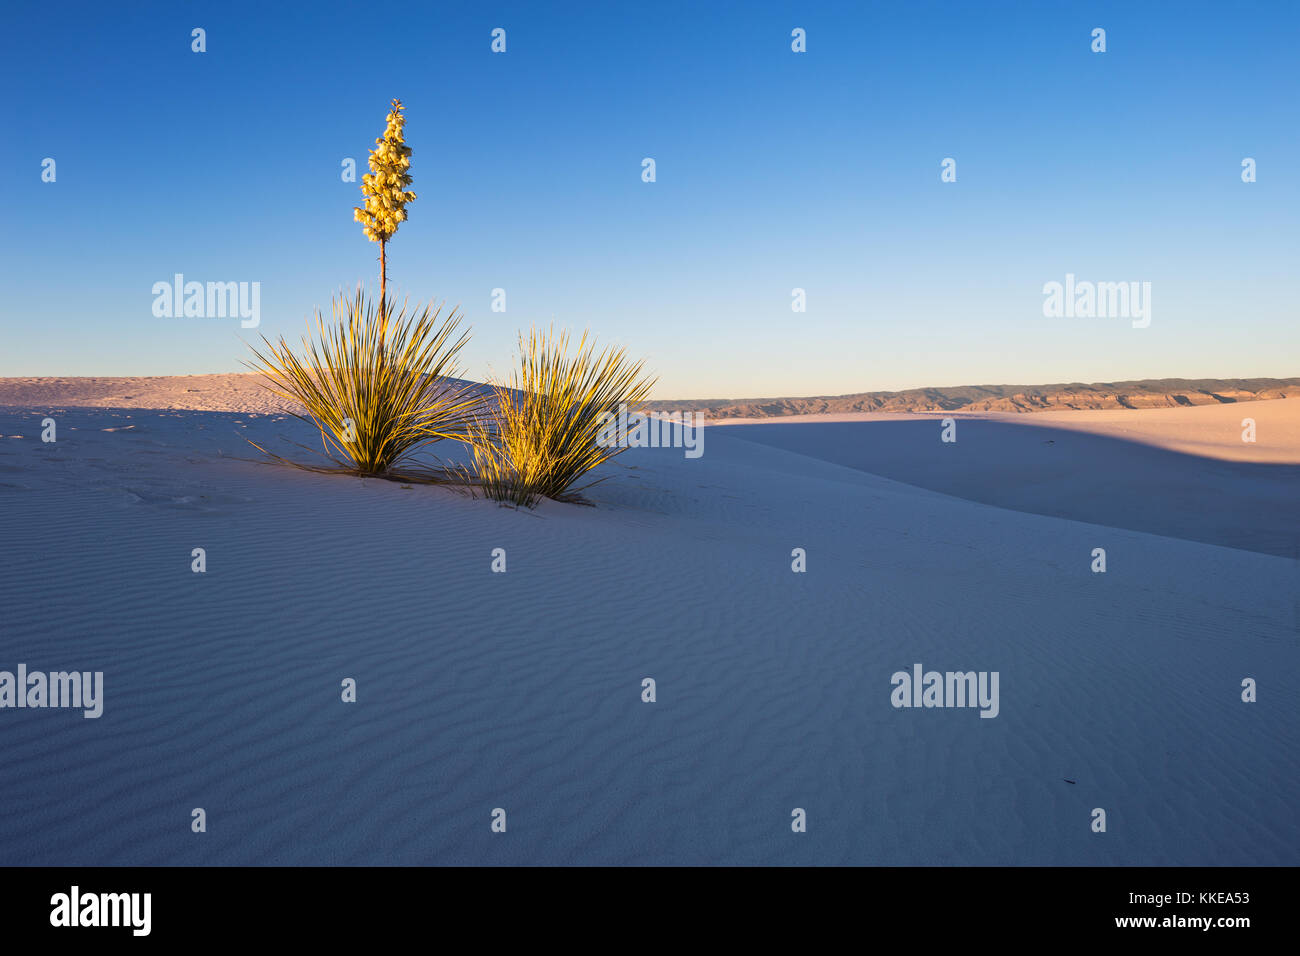 Sunset light illuminates a Soapweed Yucca on a sand dune in White Sands National Monument, New Mexico, USA. - Stock Image